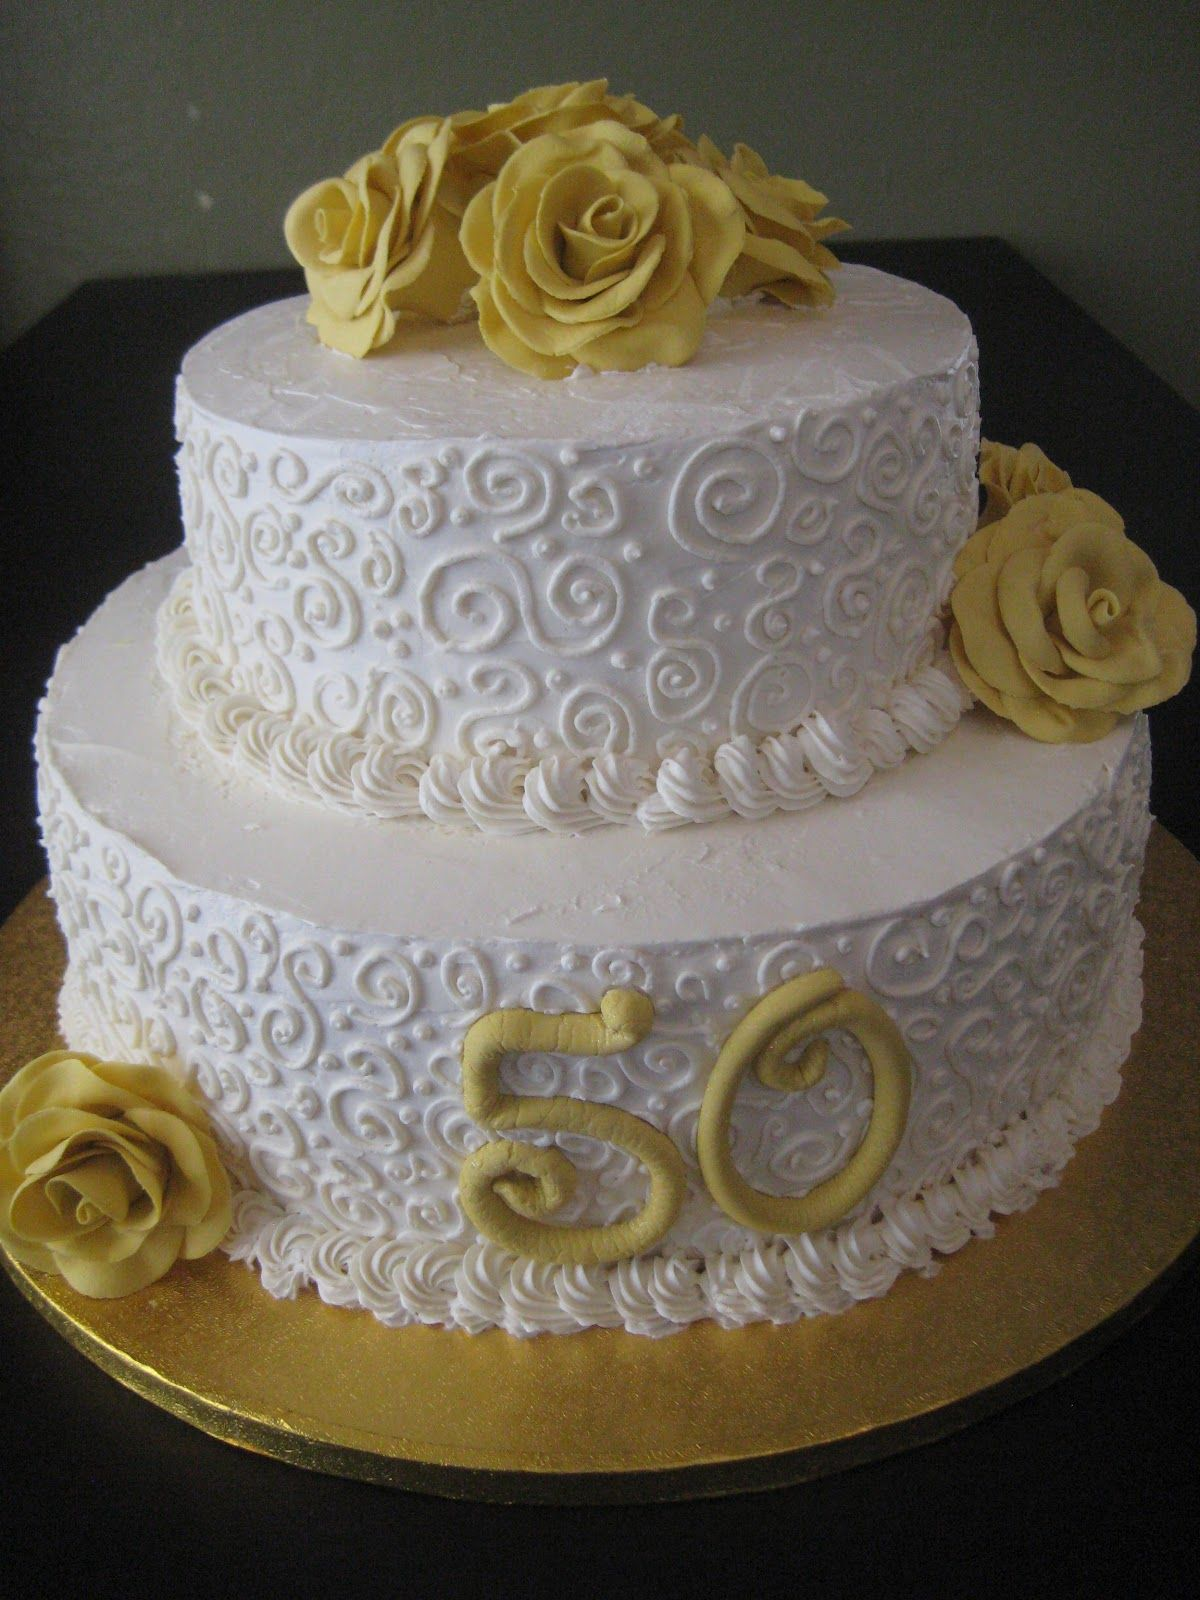 50th birthday cake ideas 50th wedding anniversary cakes posted by thenaughtytarte 1135